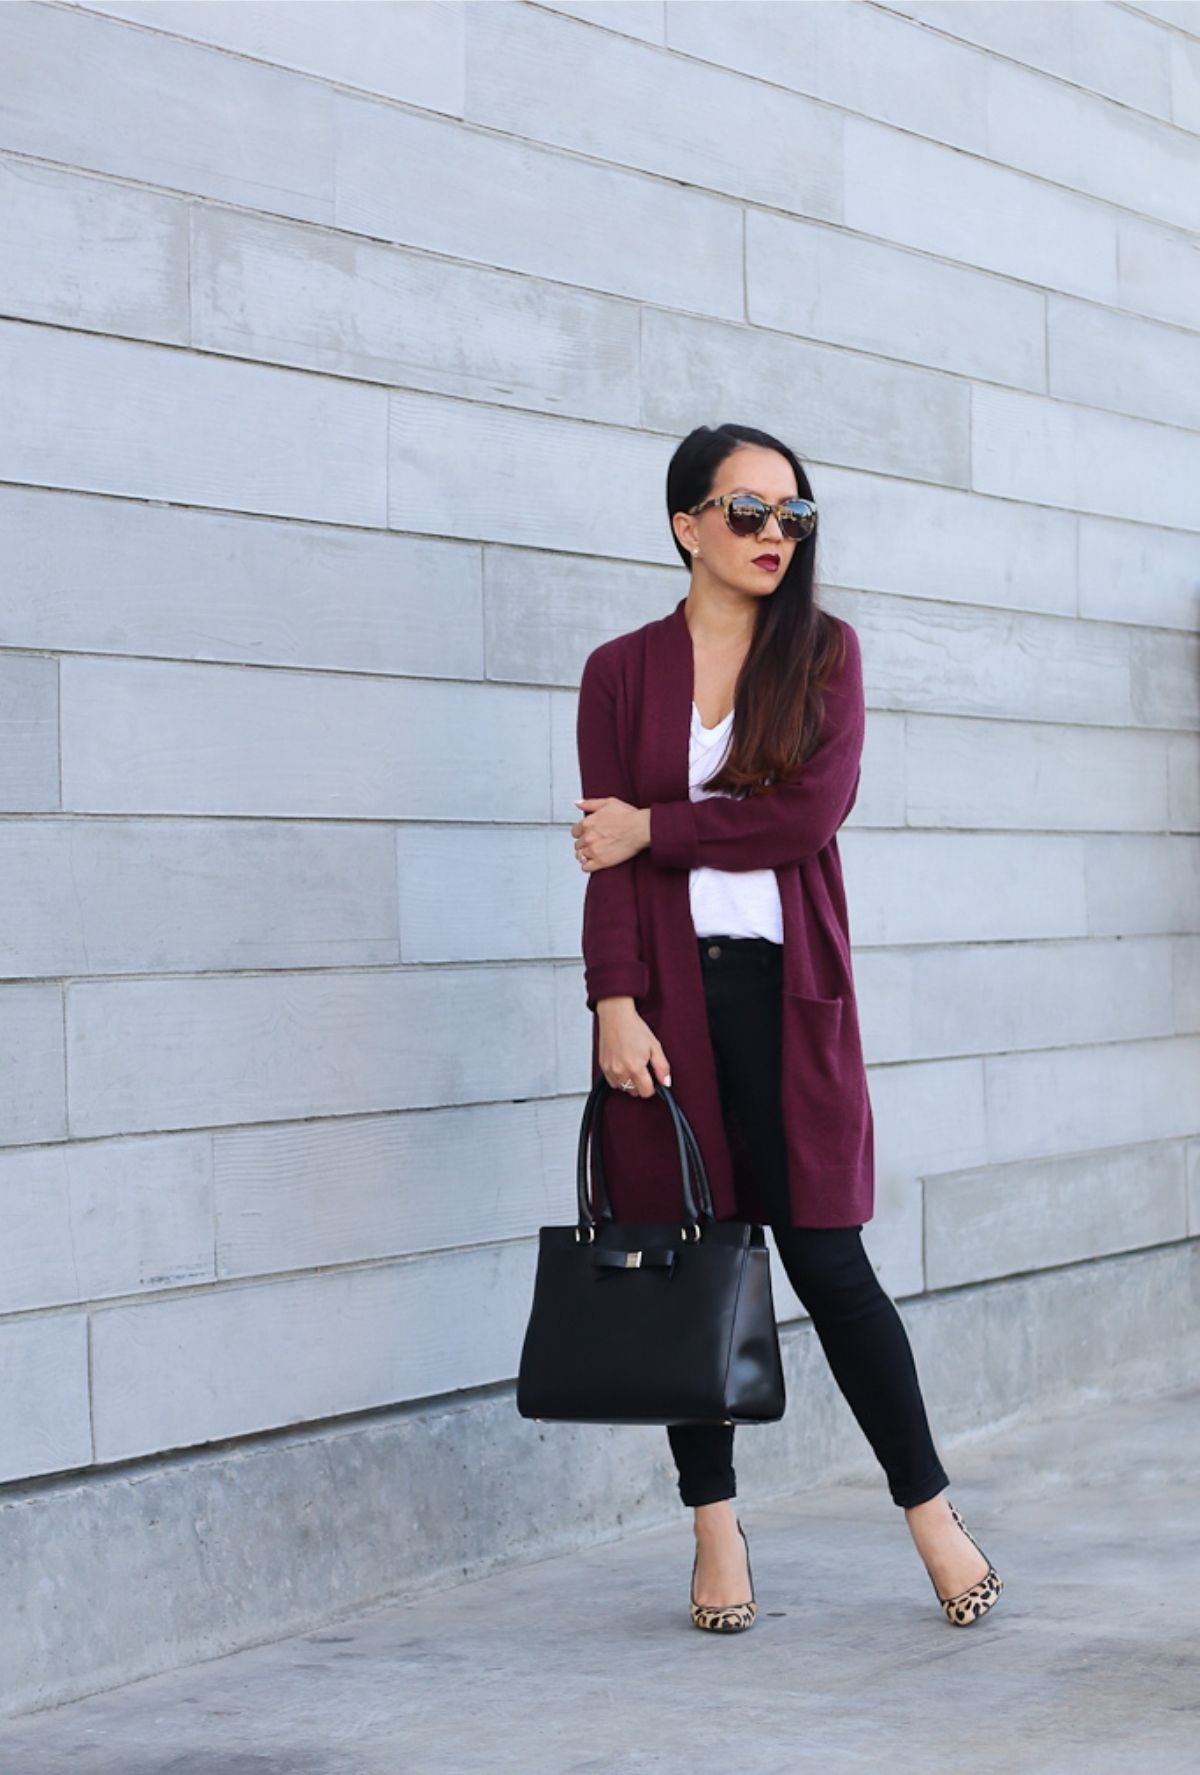 style black jeans with a cardigan